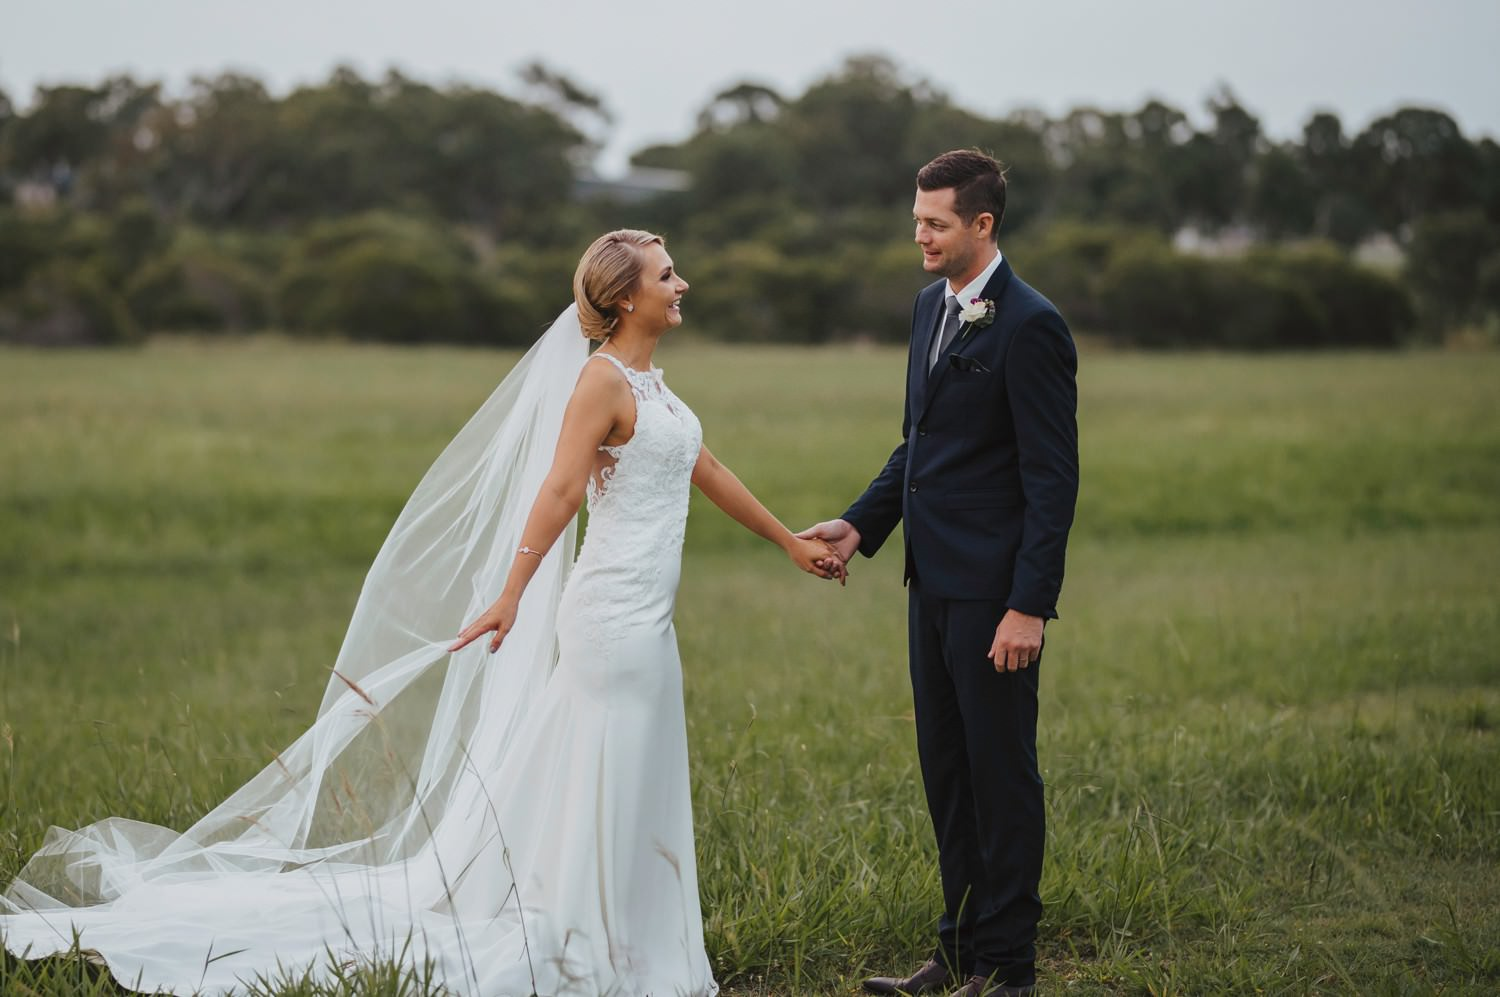 Bundaberg Bride and Groom holding hands in an open field